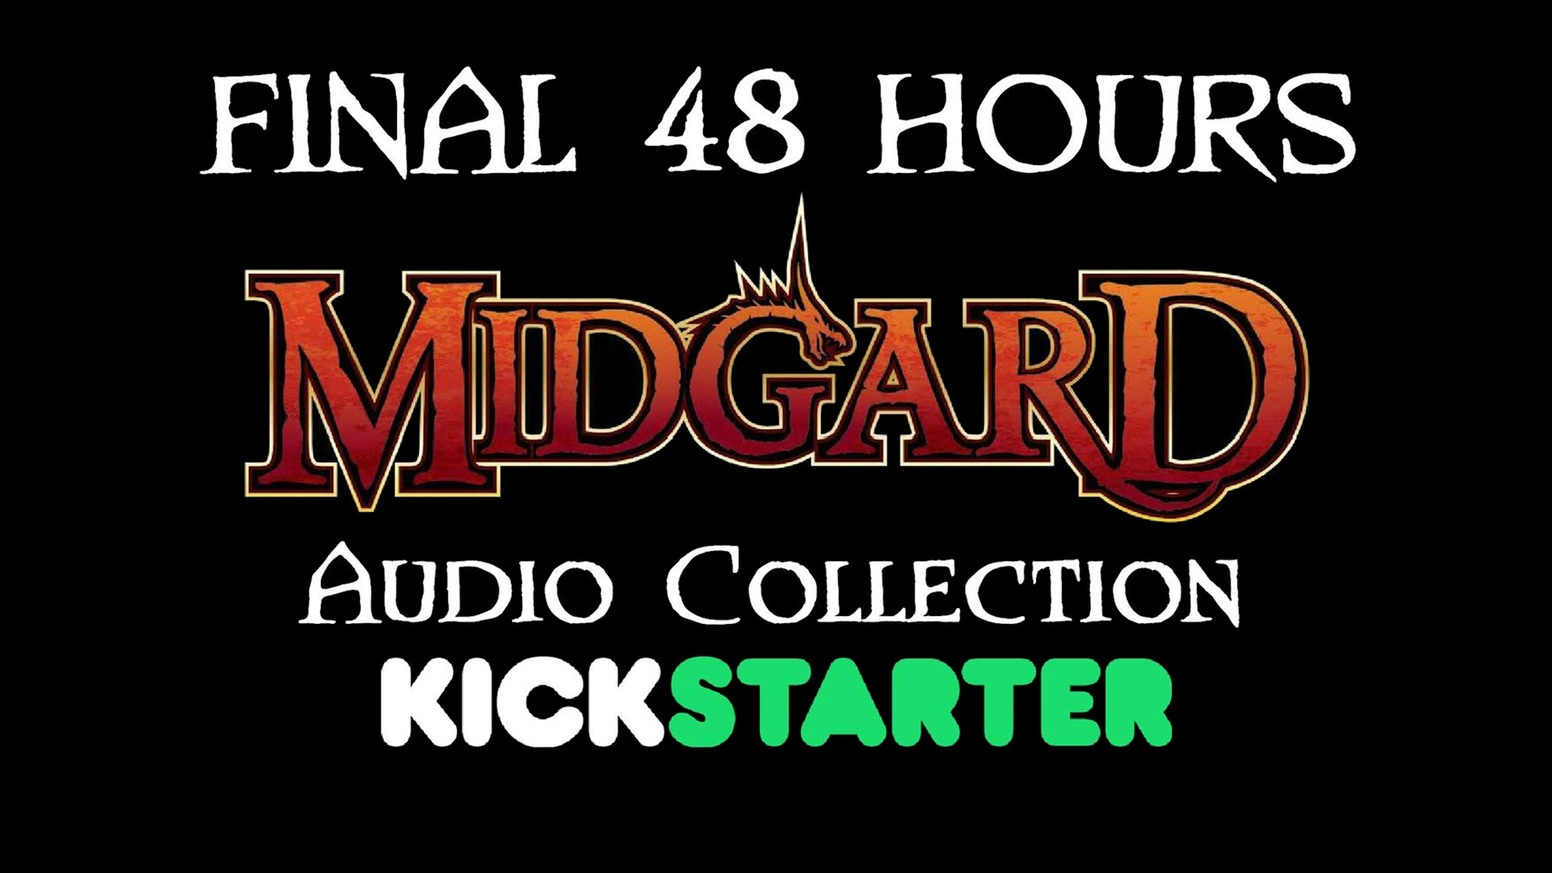 82 fantasy tracks from The Midgard Audio Collection were unlocked, Pre-order now on Backerkit!